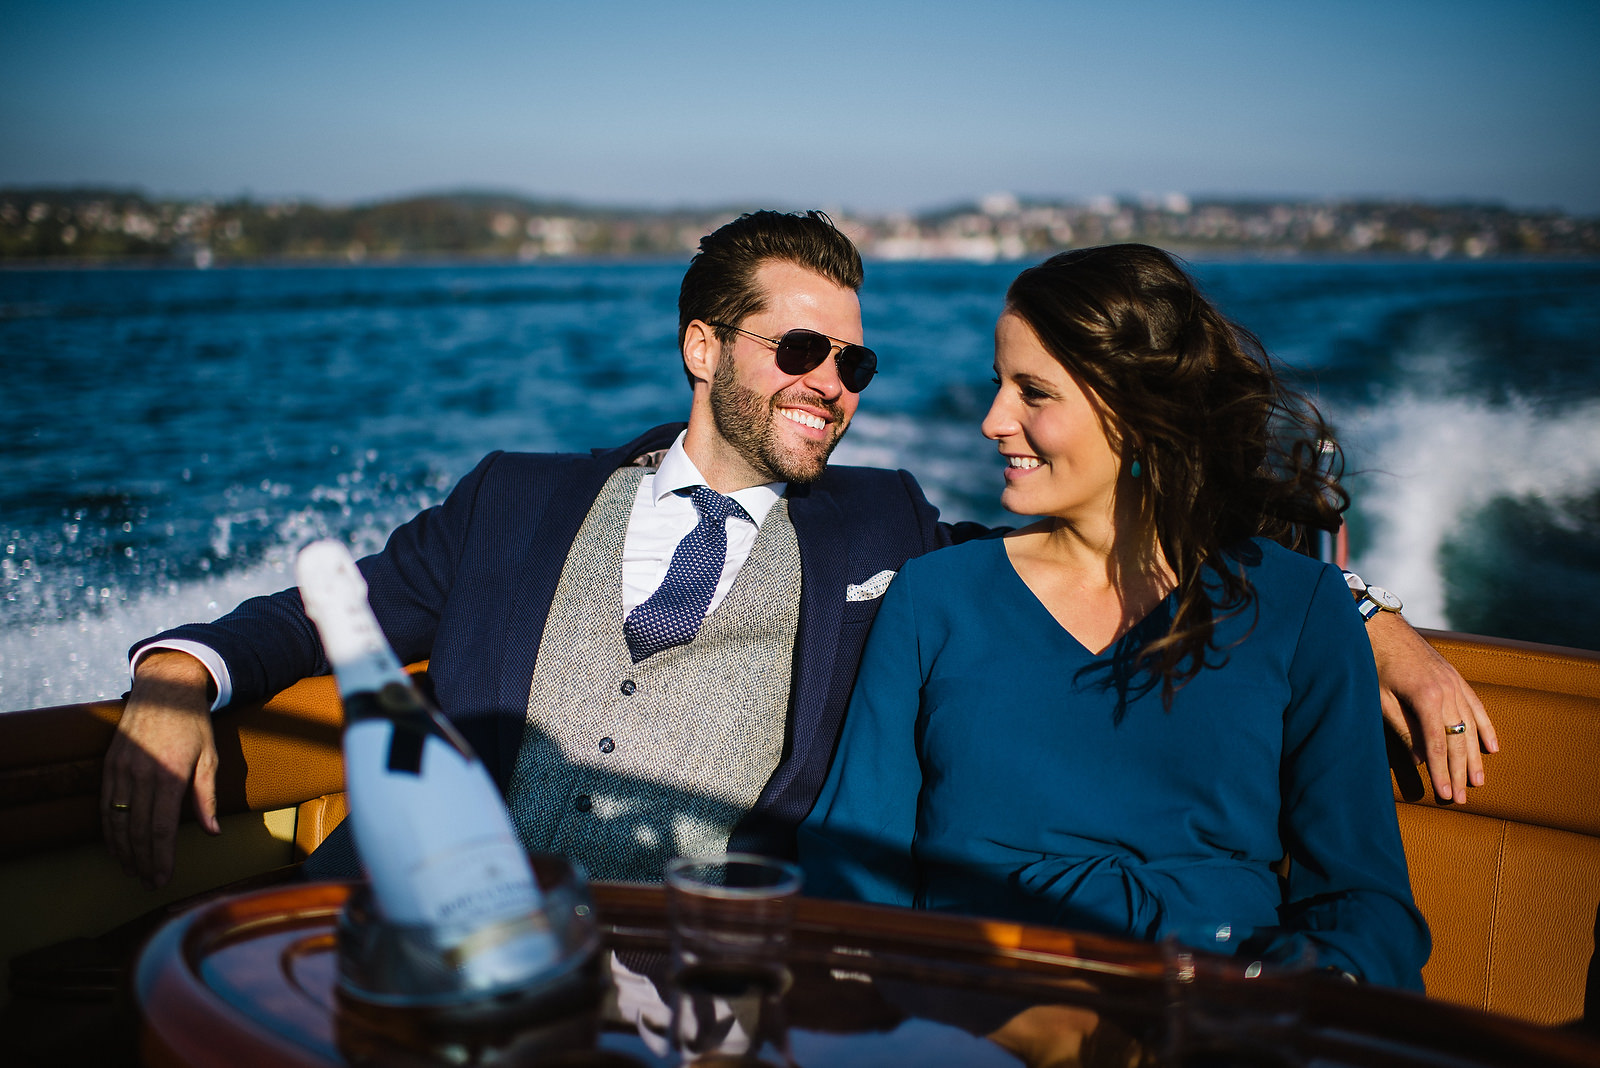 Fotograf Konstanz - Classic Boat Pegiva Shooting Bodensee Hochzeit Erlebnis EFP 03 - Couple Shooting on Lake Constance with a Pegiva motor boat  - 3 -